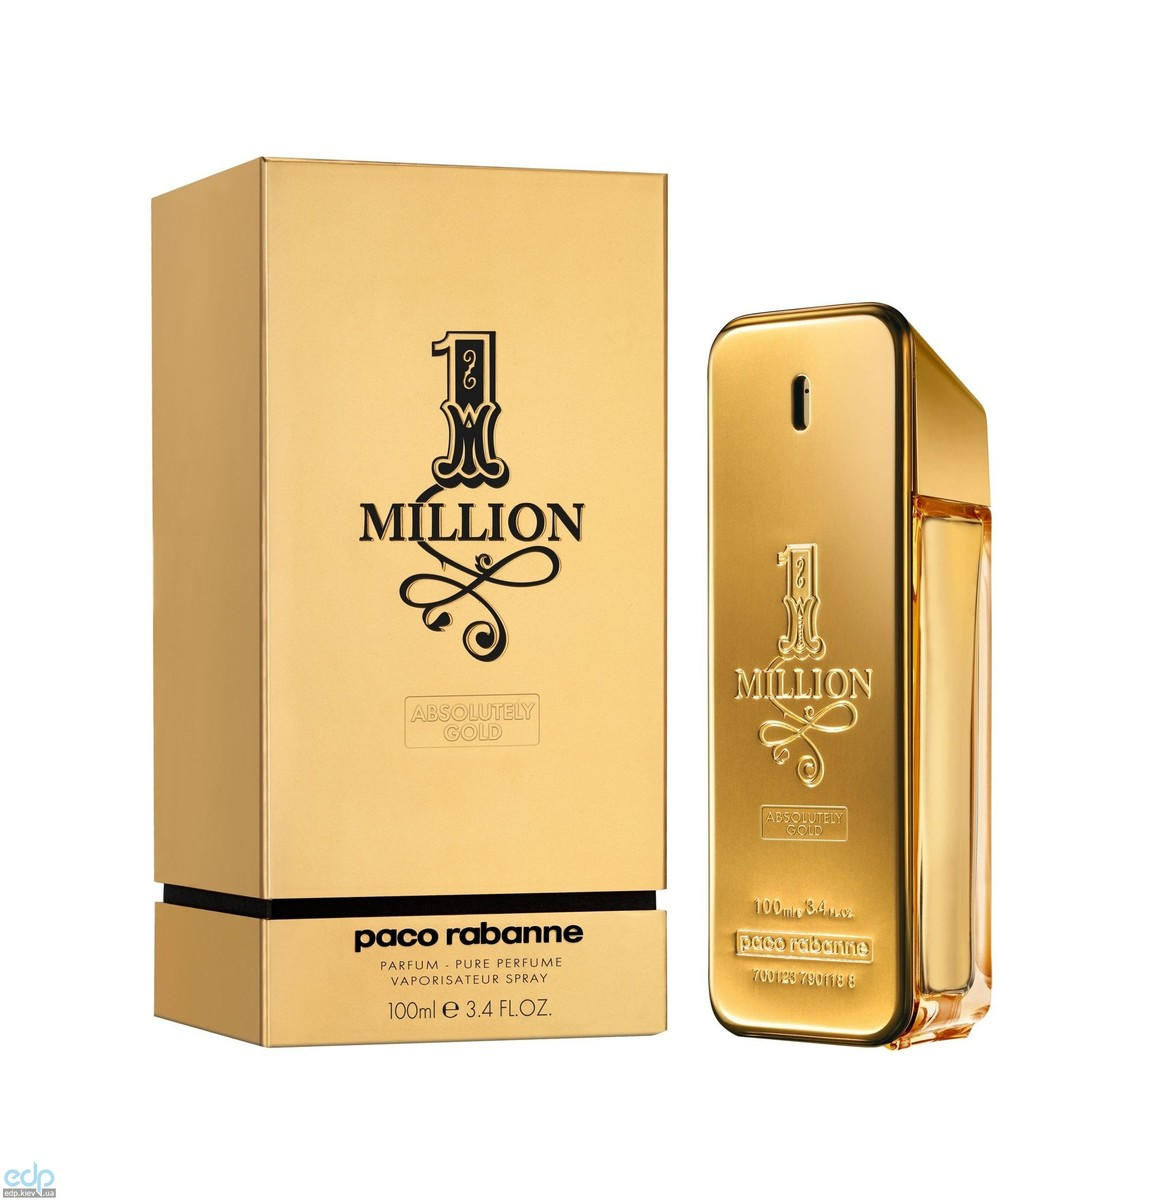 Paco Rabanne 1 Million Absolutely Gold - парфюм - 80 ml